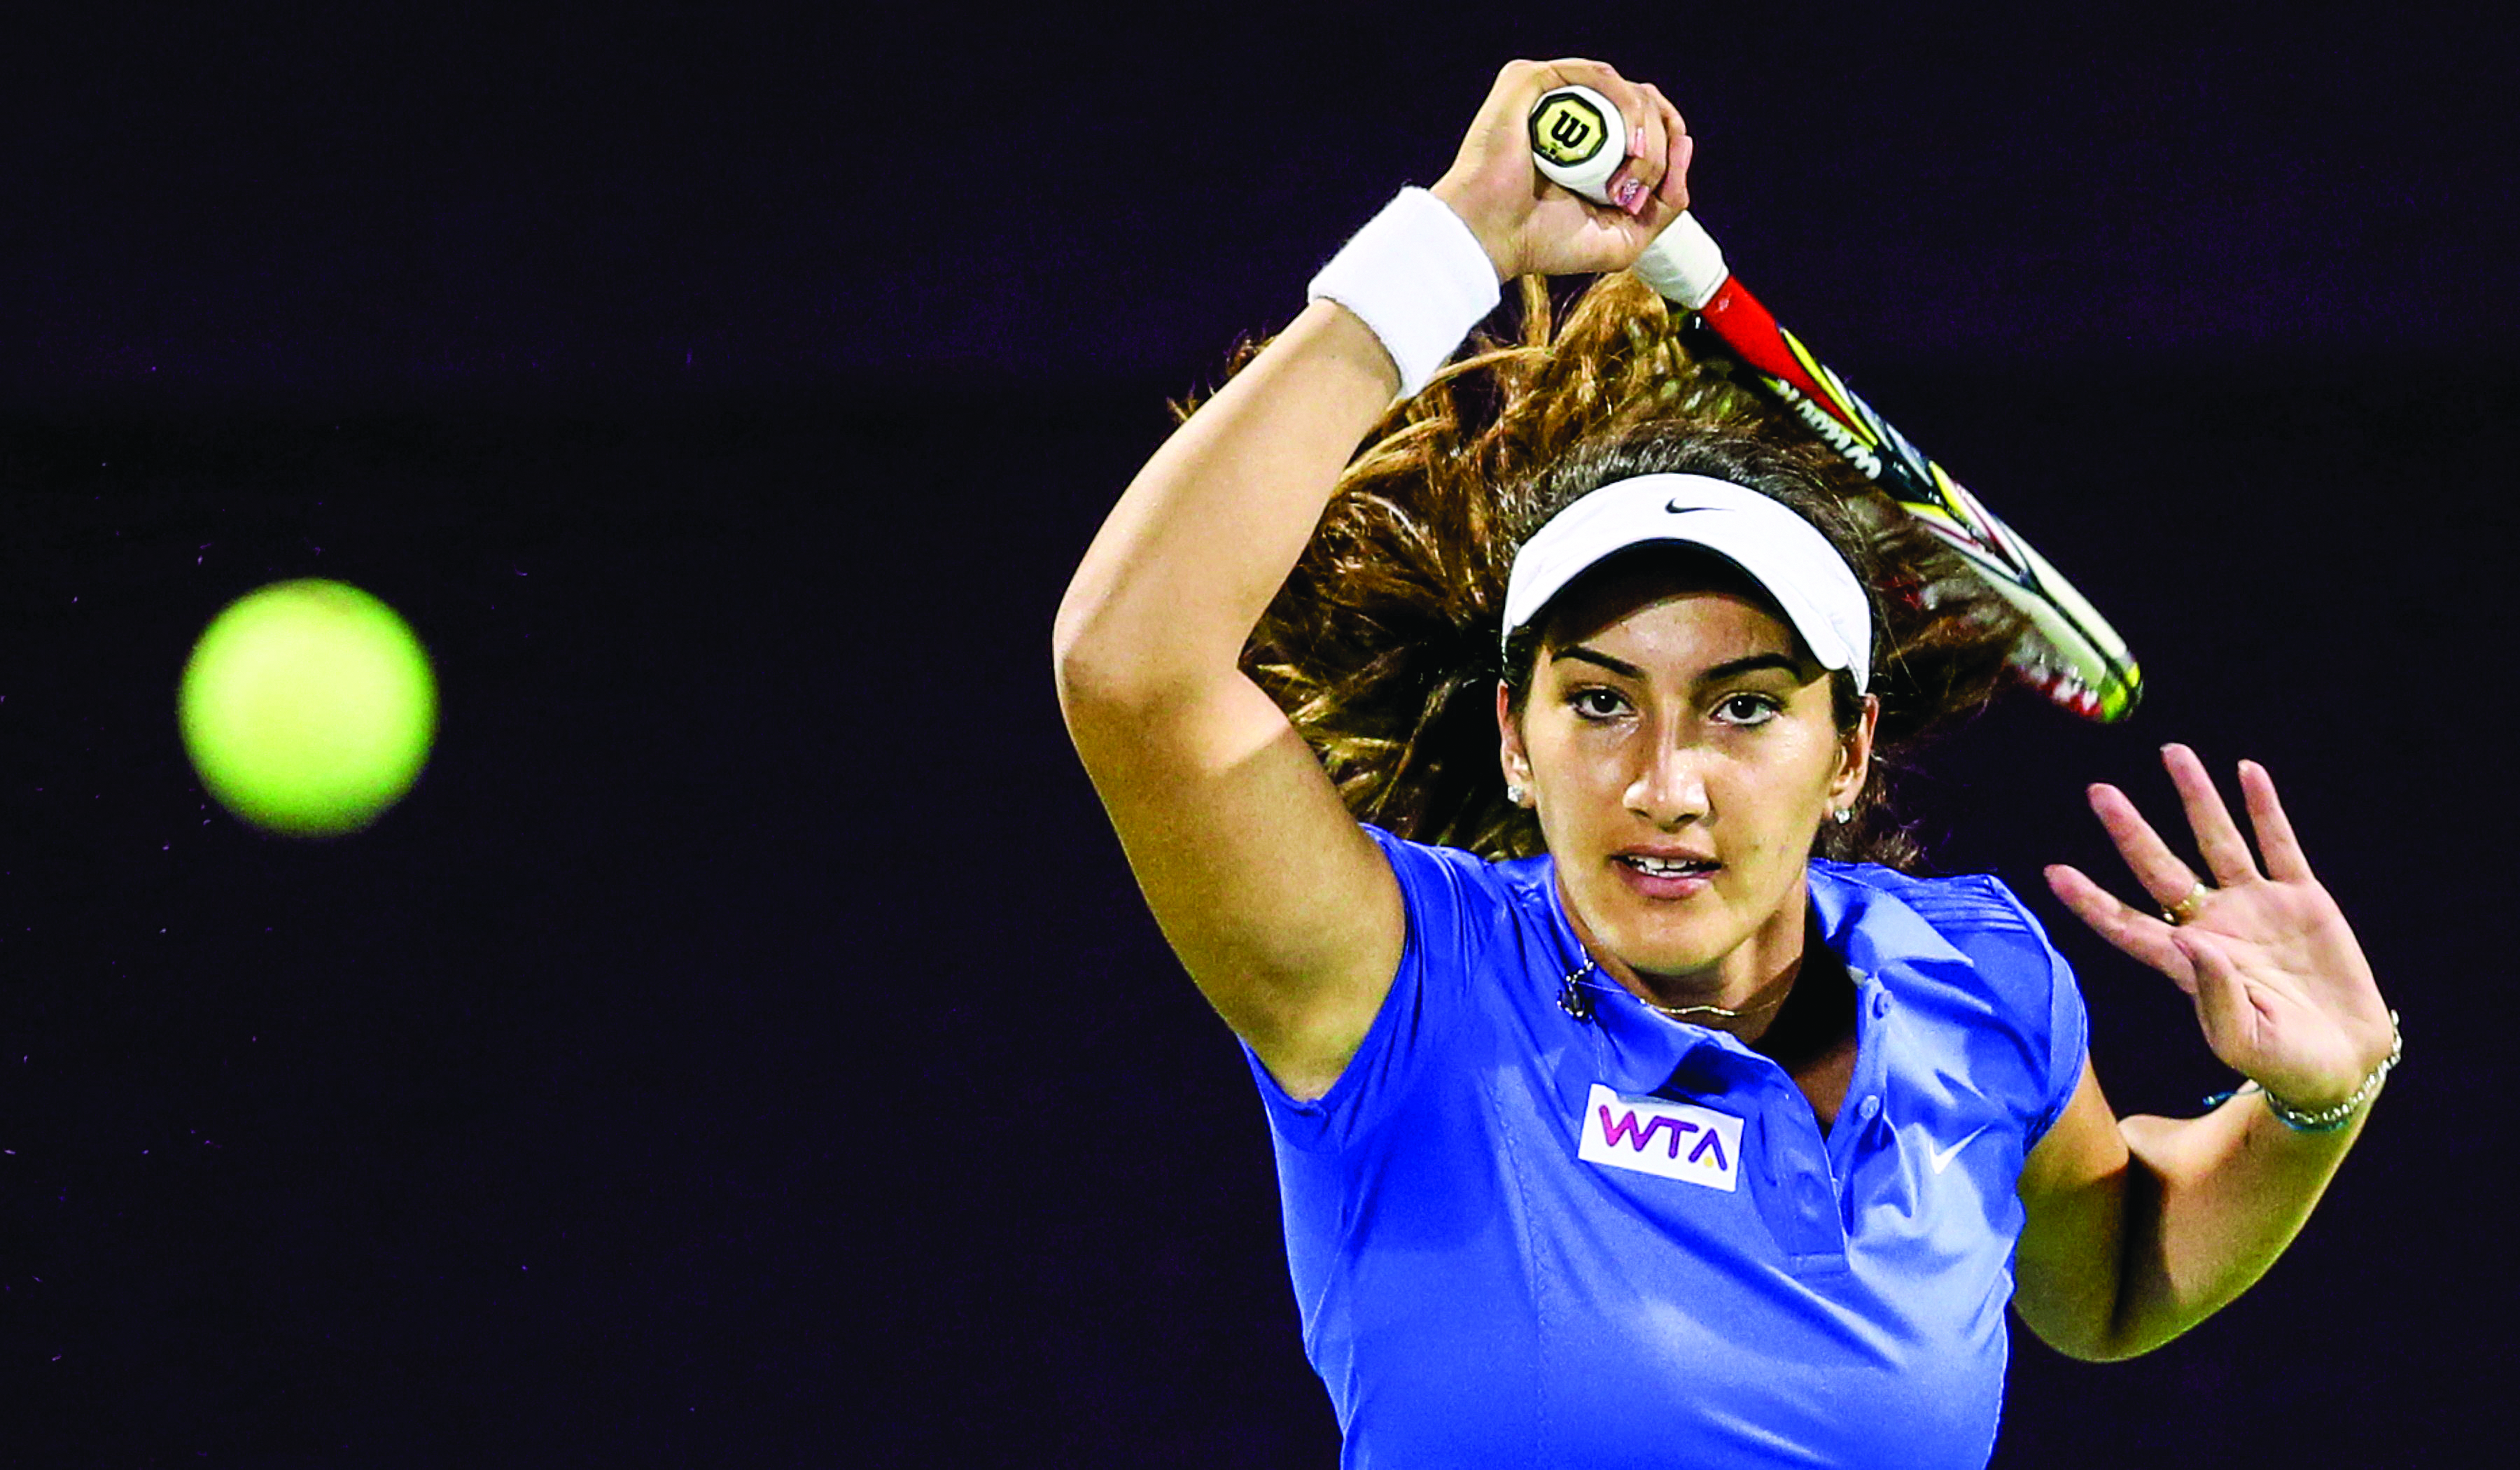 Oman's Fatma Al Nabhani settles for second place in Spain